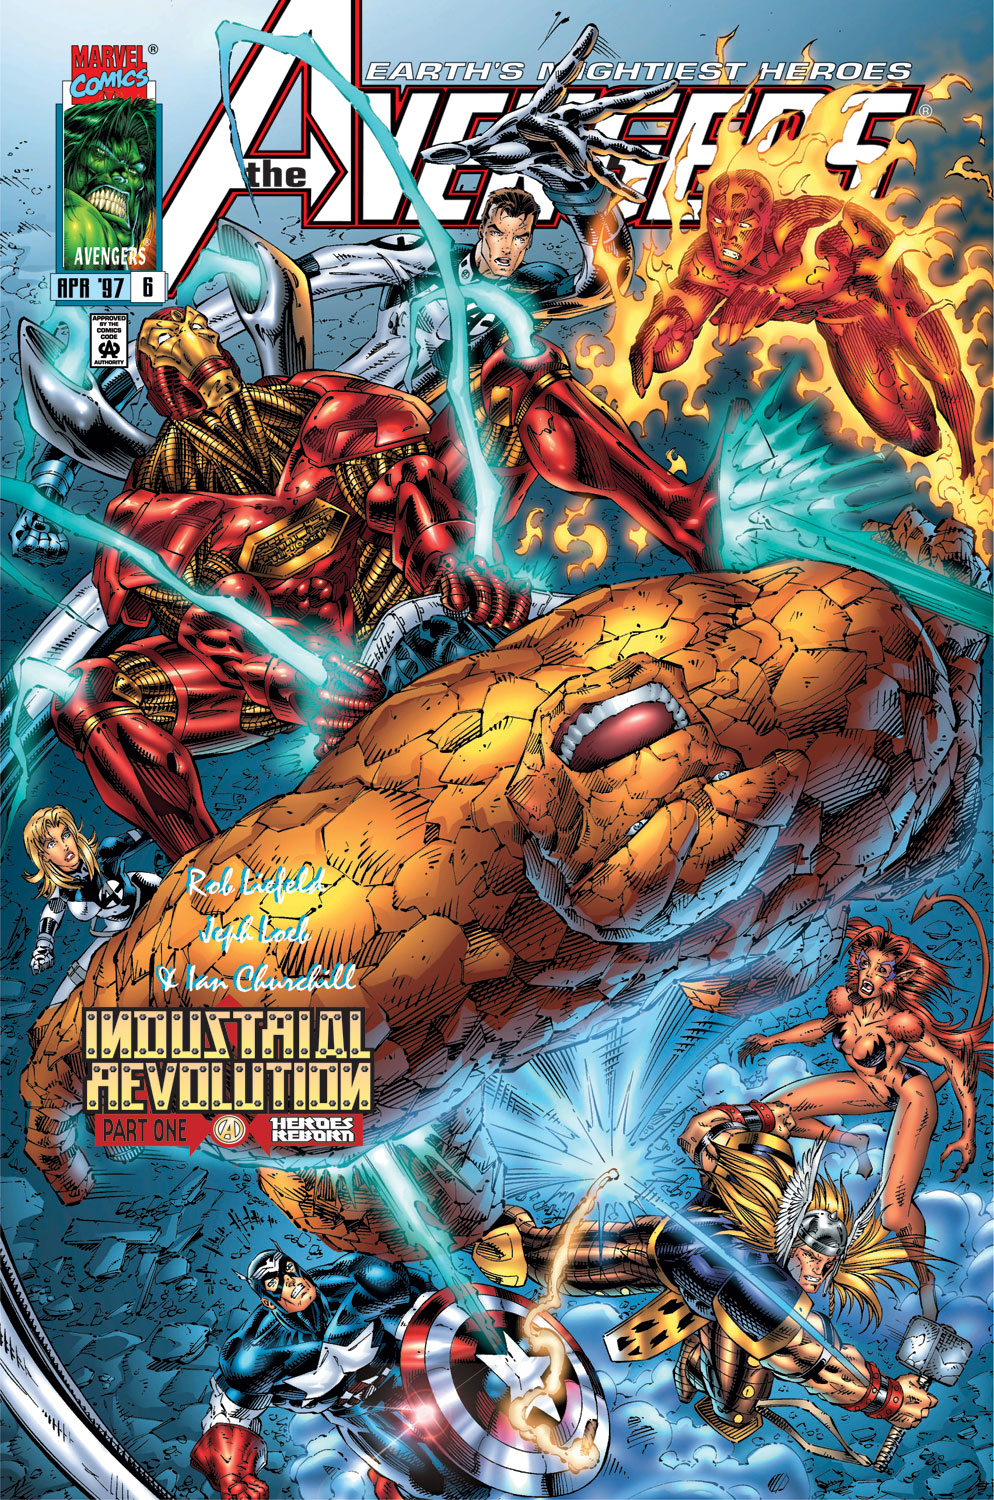 Read online Avengers (1996) comic -  Issue #6 - 1